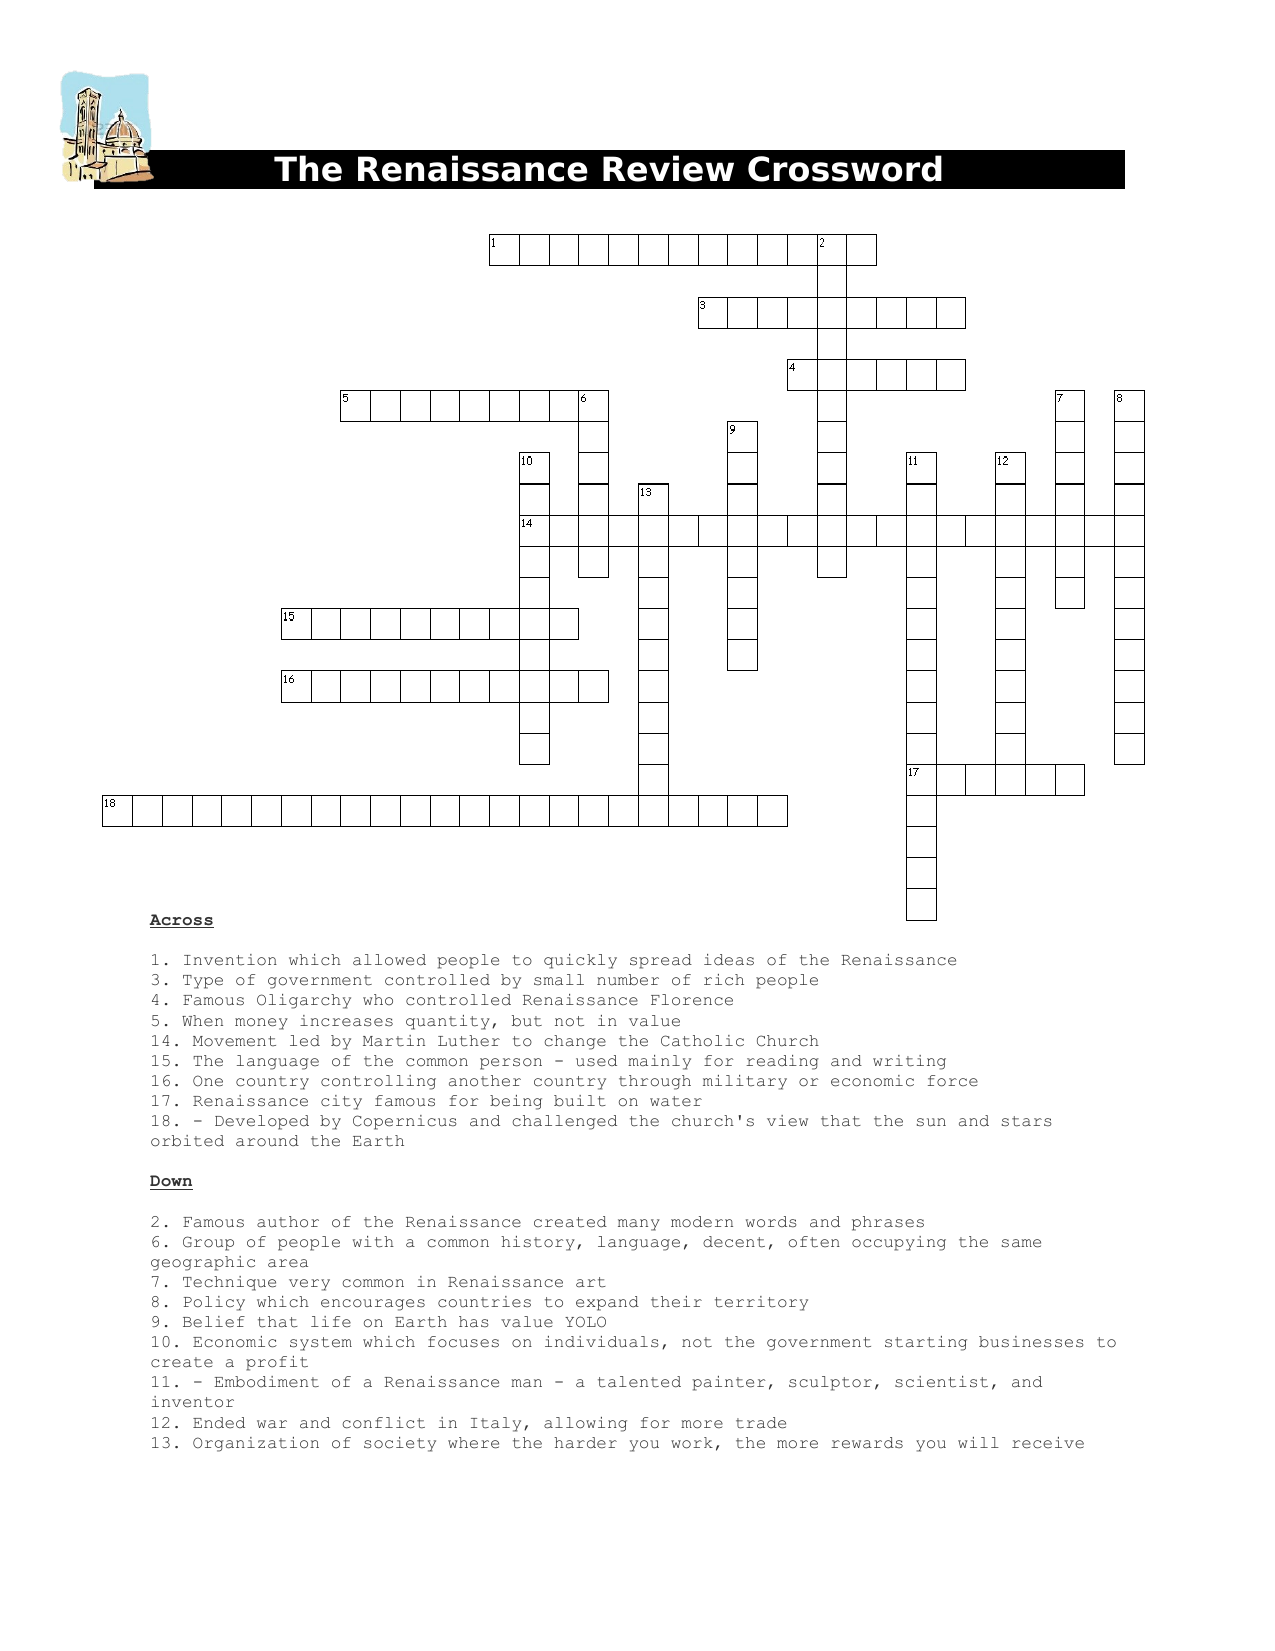 The Renaissance Review Crossword Resource Preview